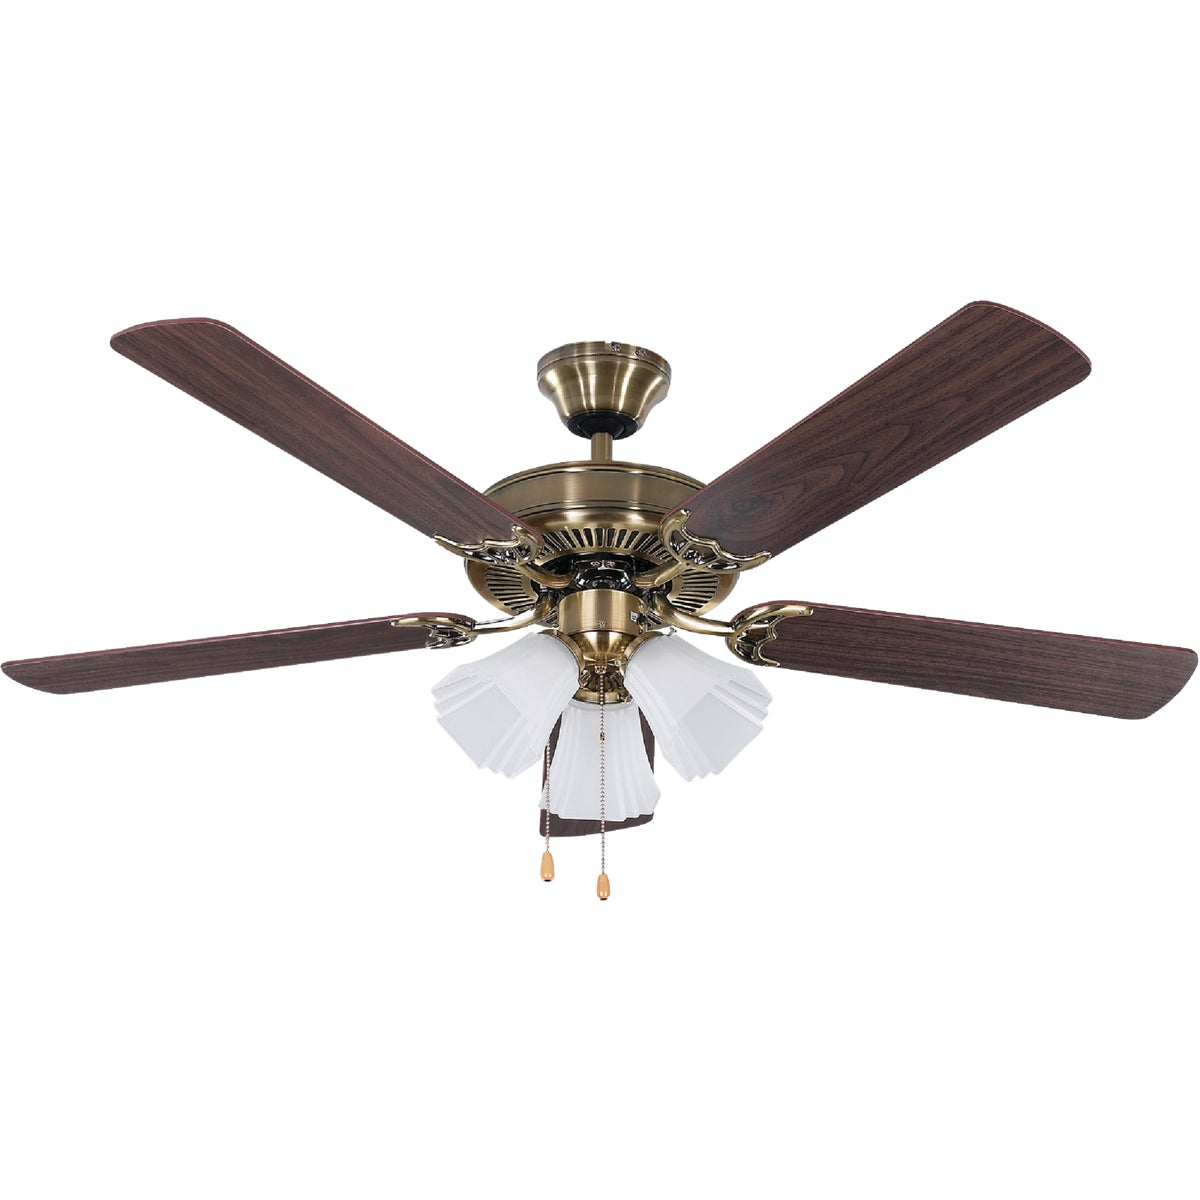 "52"" AB CEILING FAN - CF52SHB5AB by Canarm Gs"